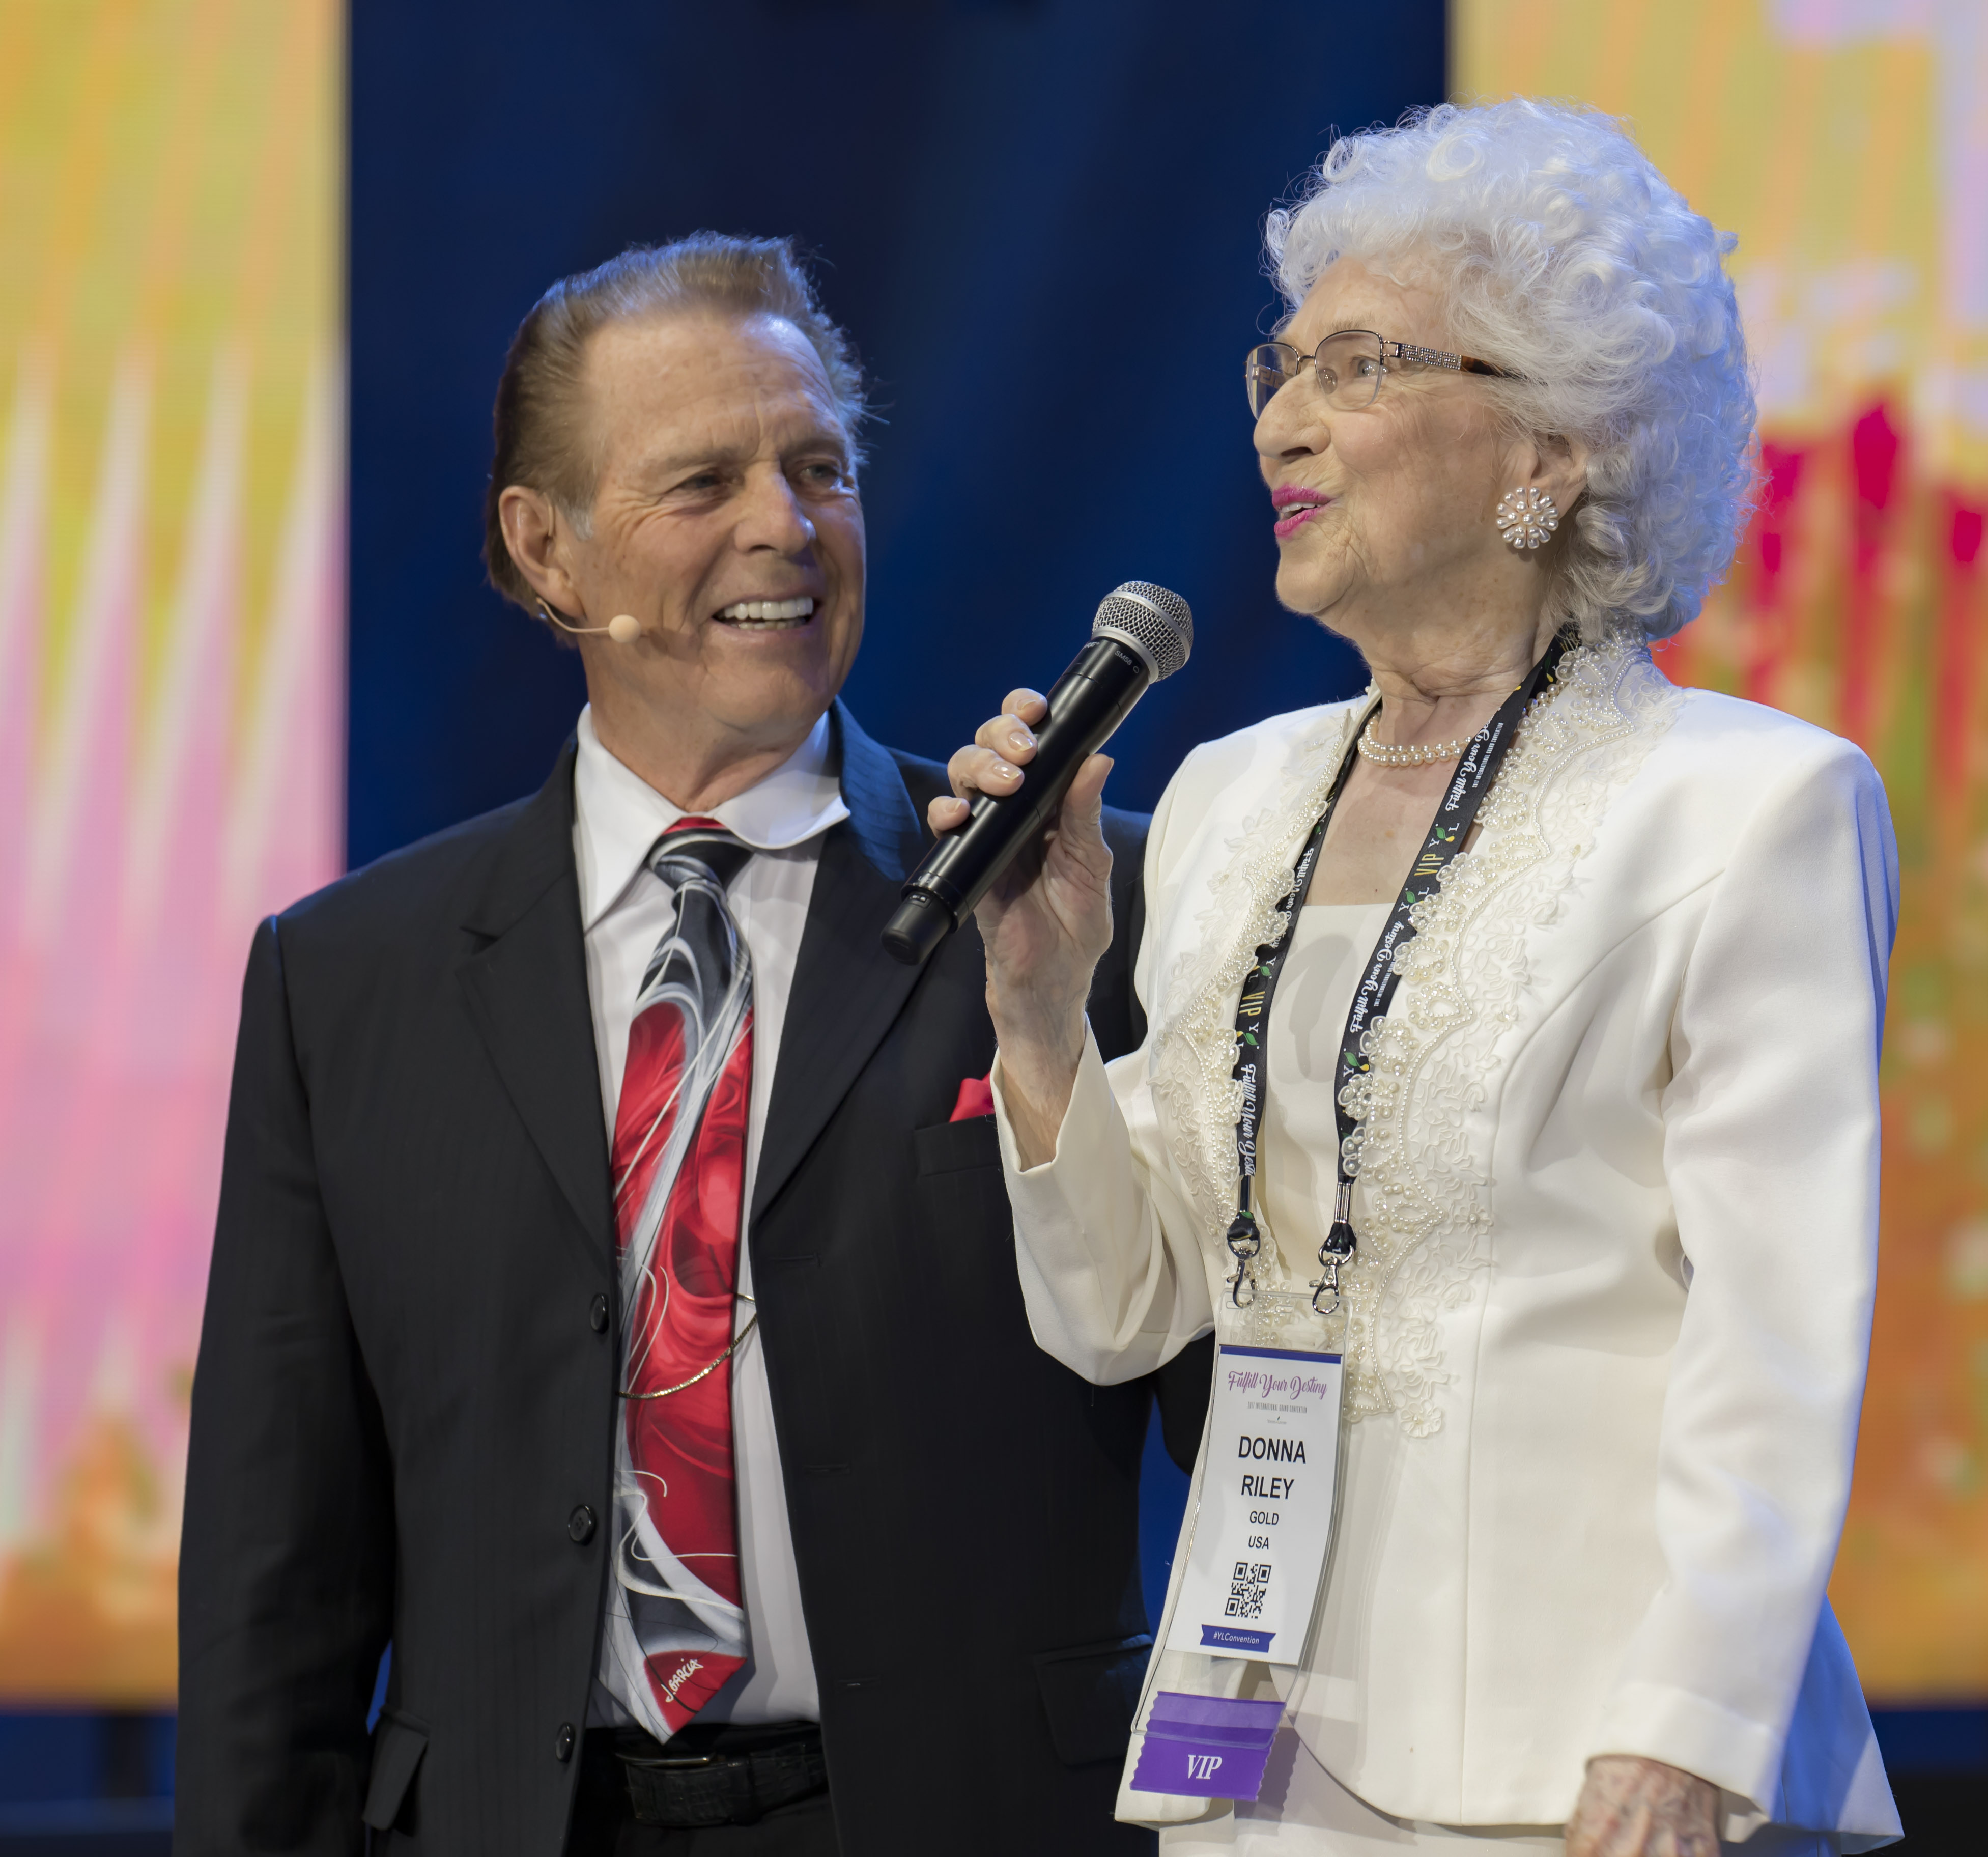 Gary and Donna, onstage at 2017 Convention